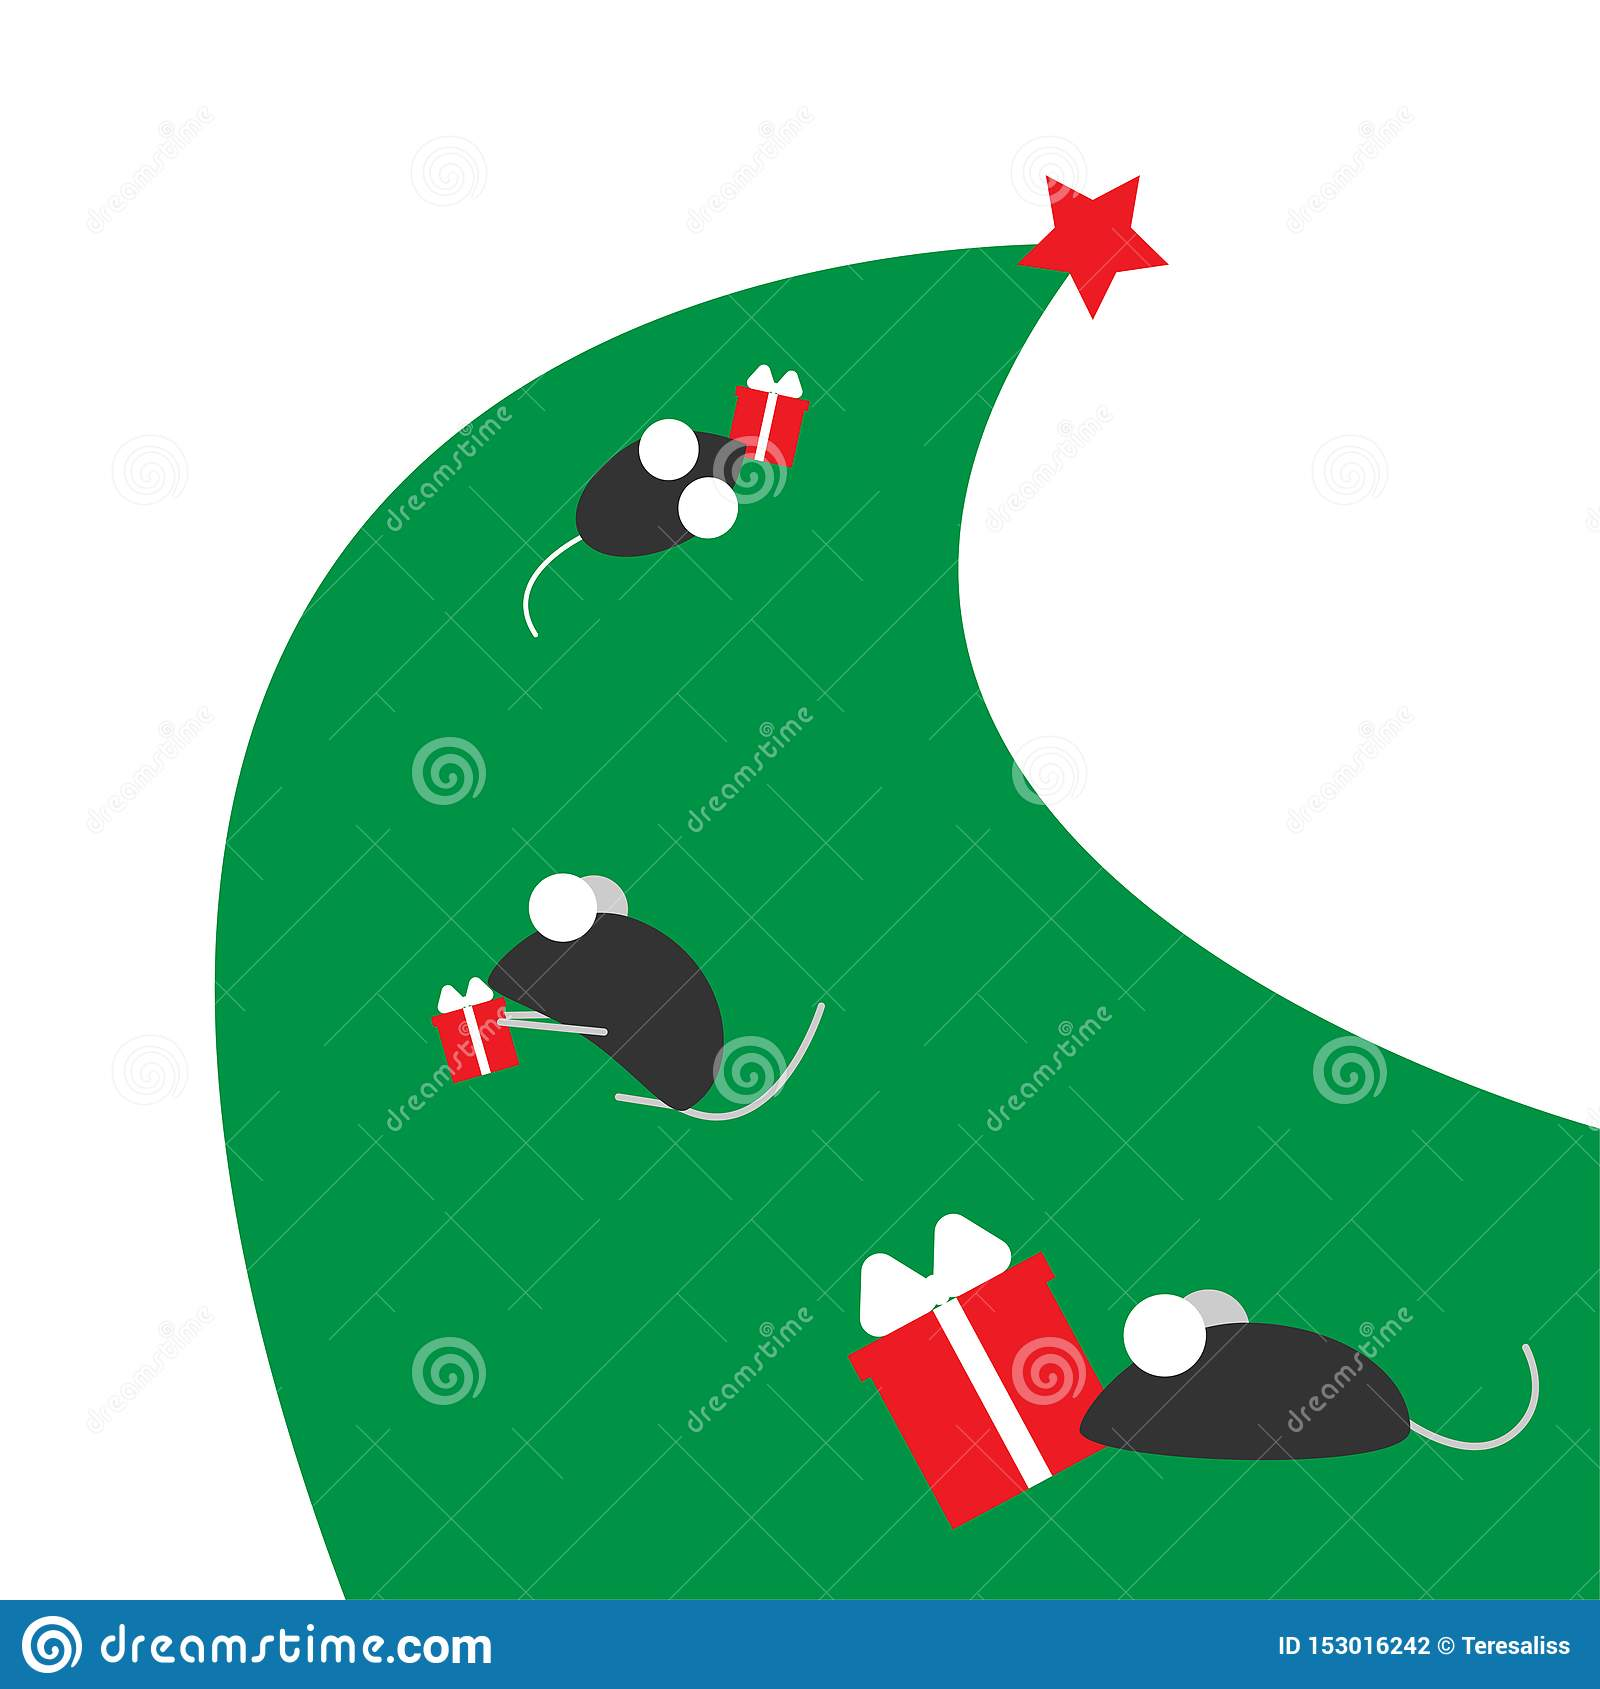 New Year of the rat or mouse. The symbol of the Chinese year. Mice run on a Christmas tree with gifts. Place for your